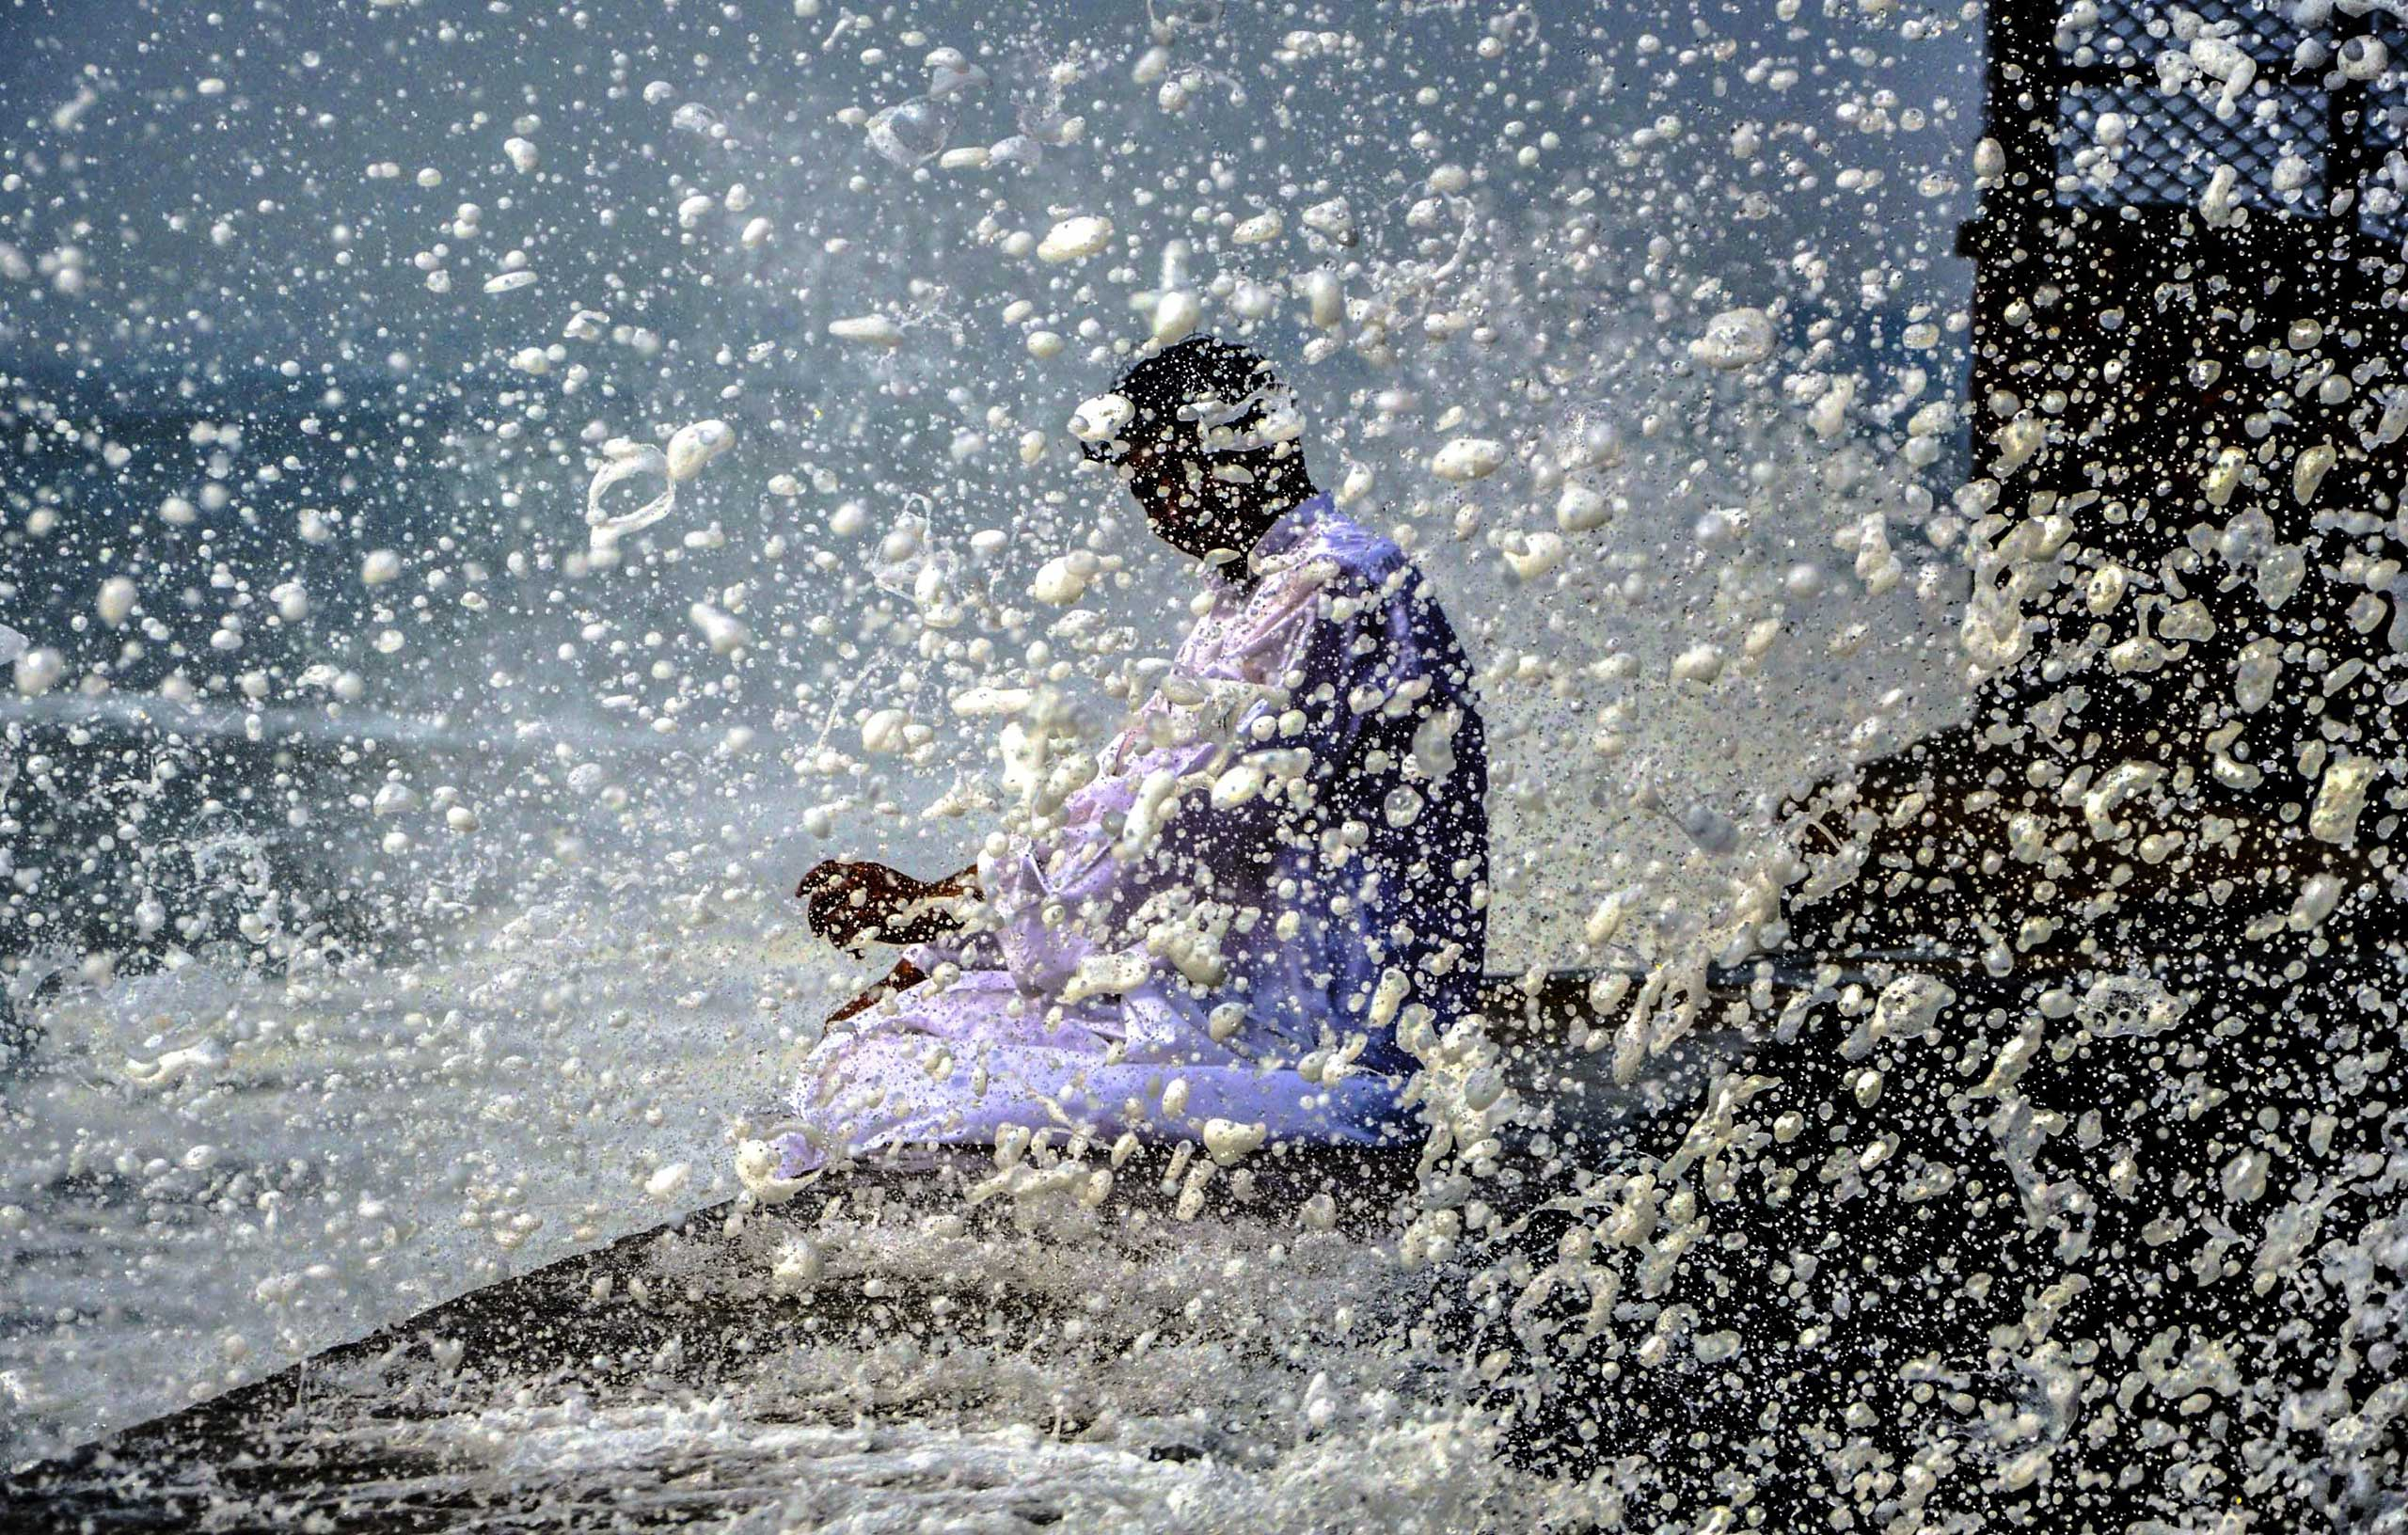 Oct. 28, 2014. A man sits at the beach in Karachi. A tropical cyclone named Nilofar was heading for western India from over the Arabian Sea, prompting authorities to take precautionary measures.